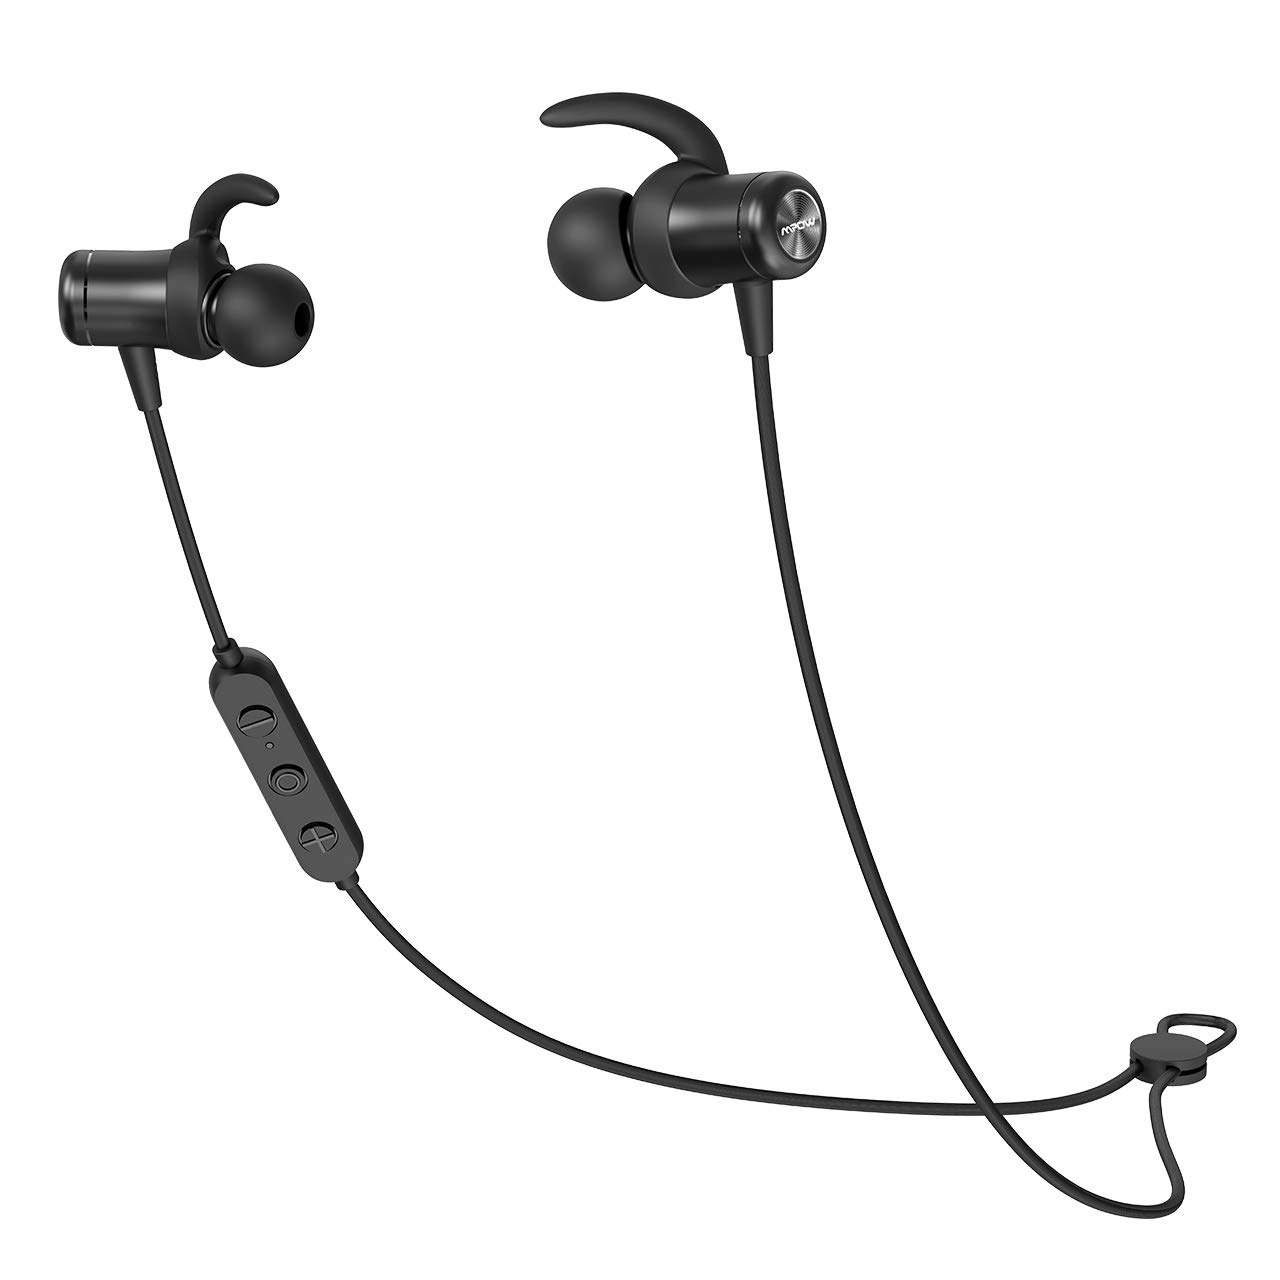 Bluetooth Headphones Sports, Mpow S11 Wireless aptX 5.0 Earphones IPX7 Waterproof in-Ear, Running Magnetic Earbuds Sport Fitness Built-in Mic with HD Stereo Sounds CVC6.0 for iPhone Android, Black